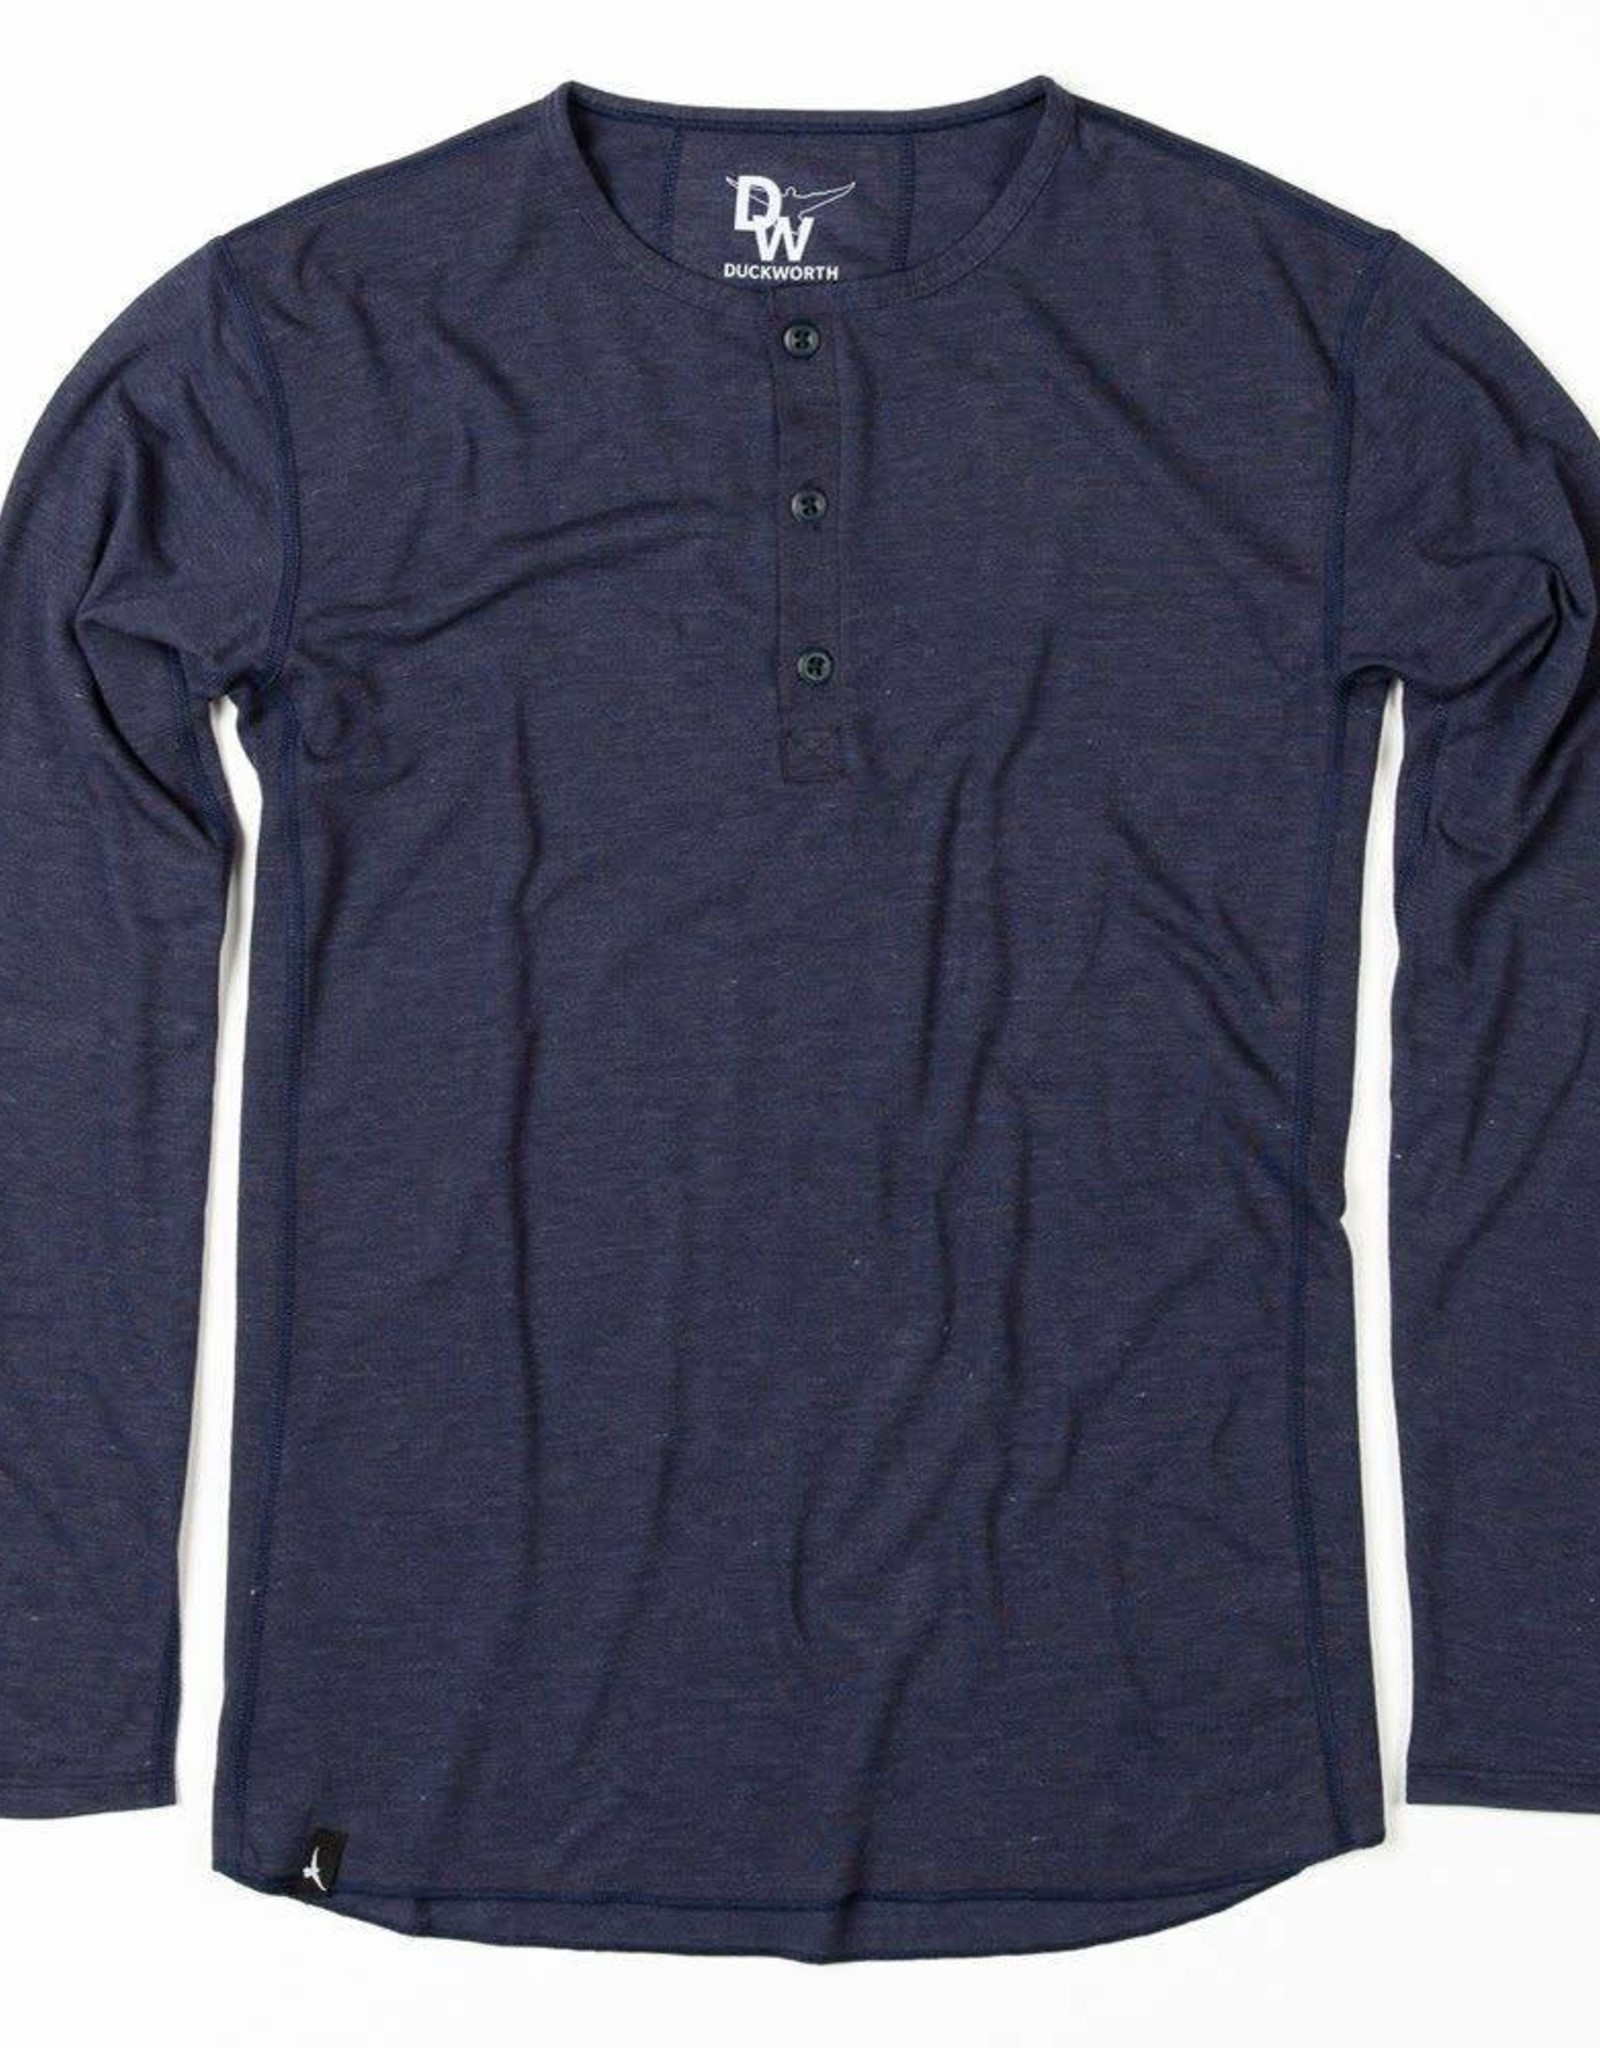 Duckworth Duckworth Men's Vapor Henley